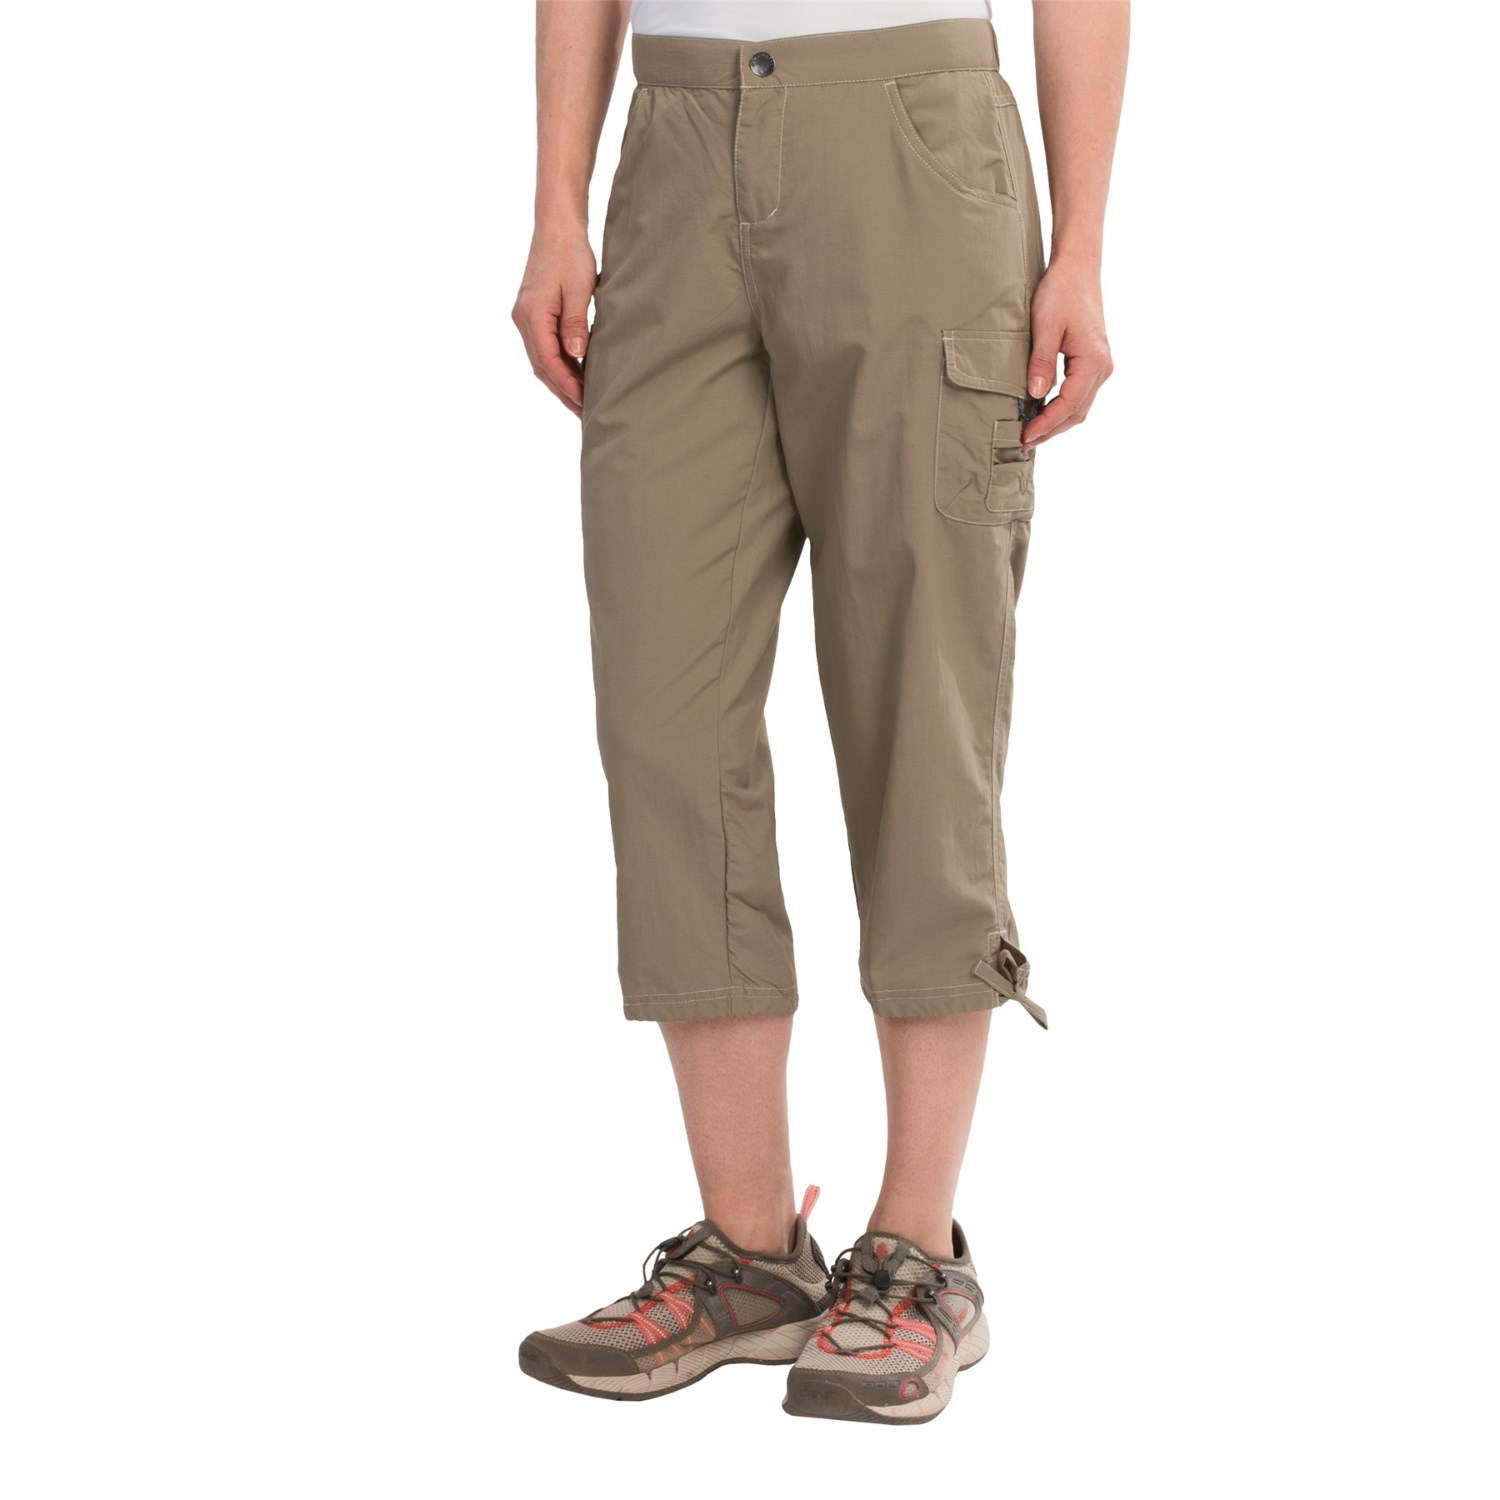 White Sierra Crystal Cove River Capris (For Women) - Save 62%